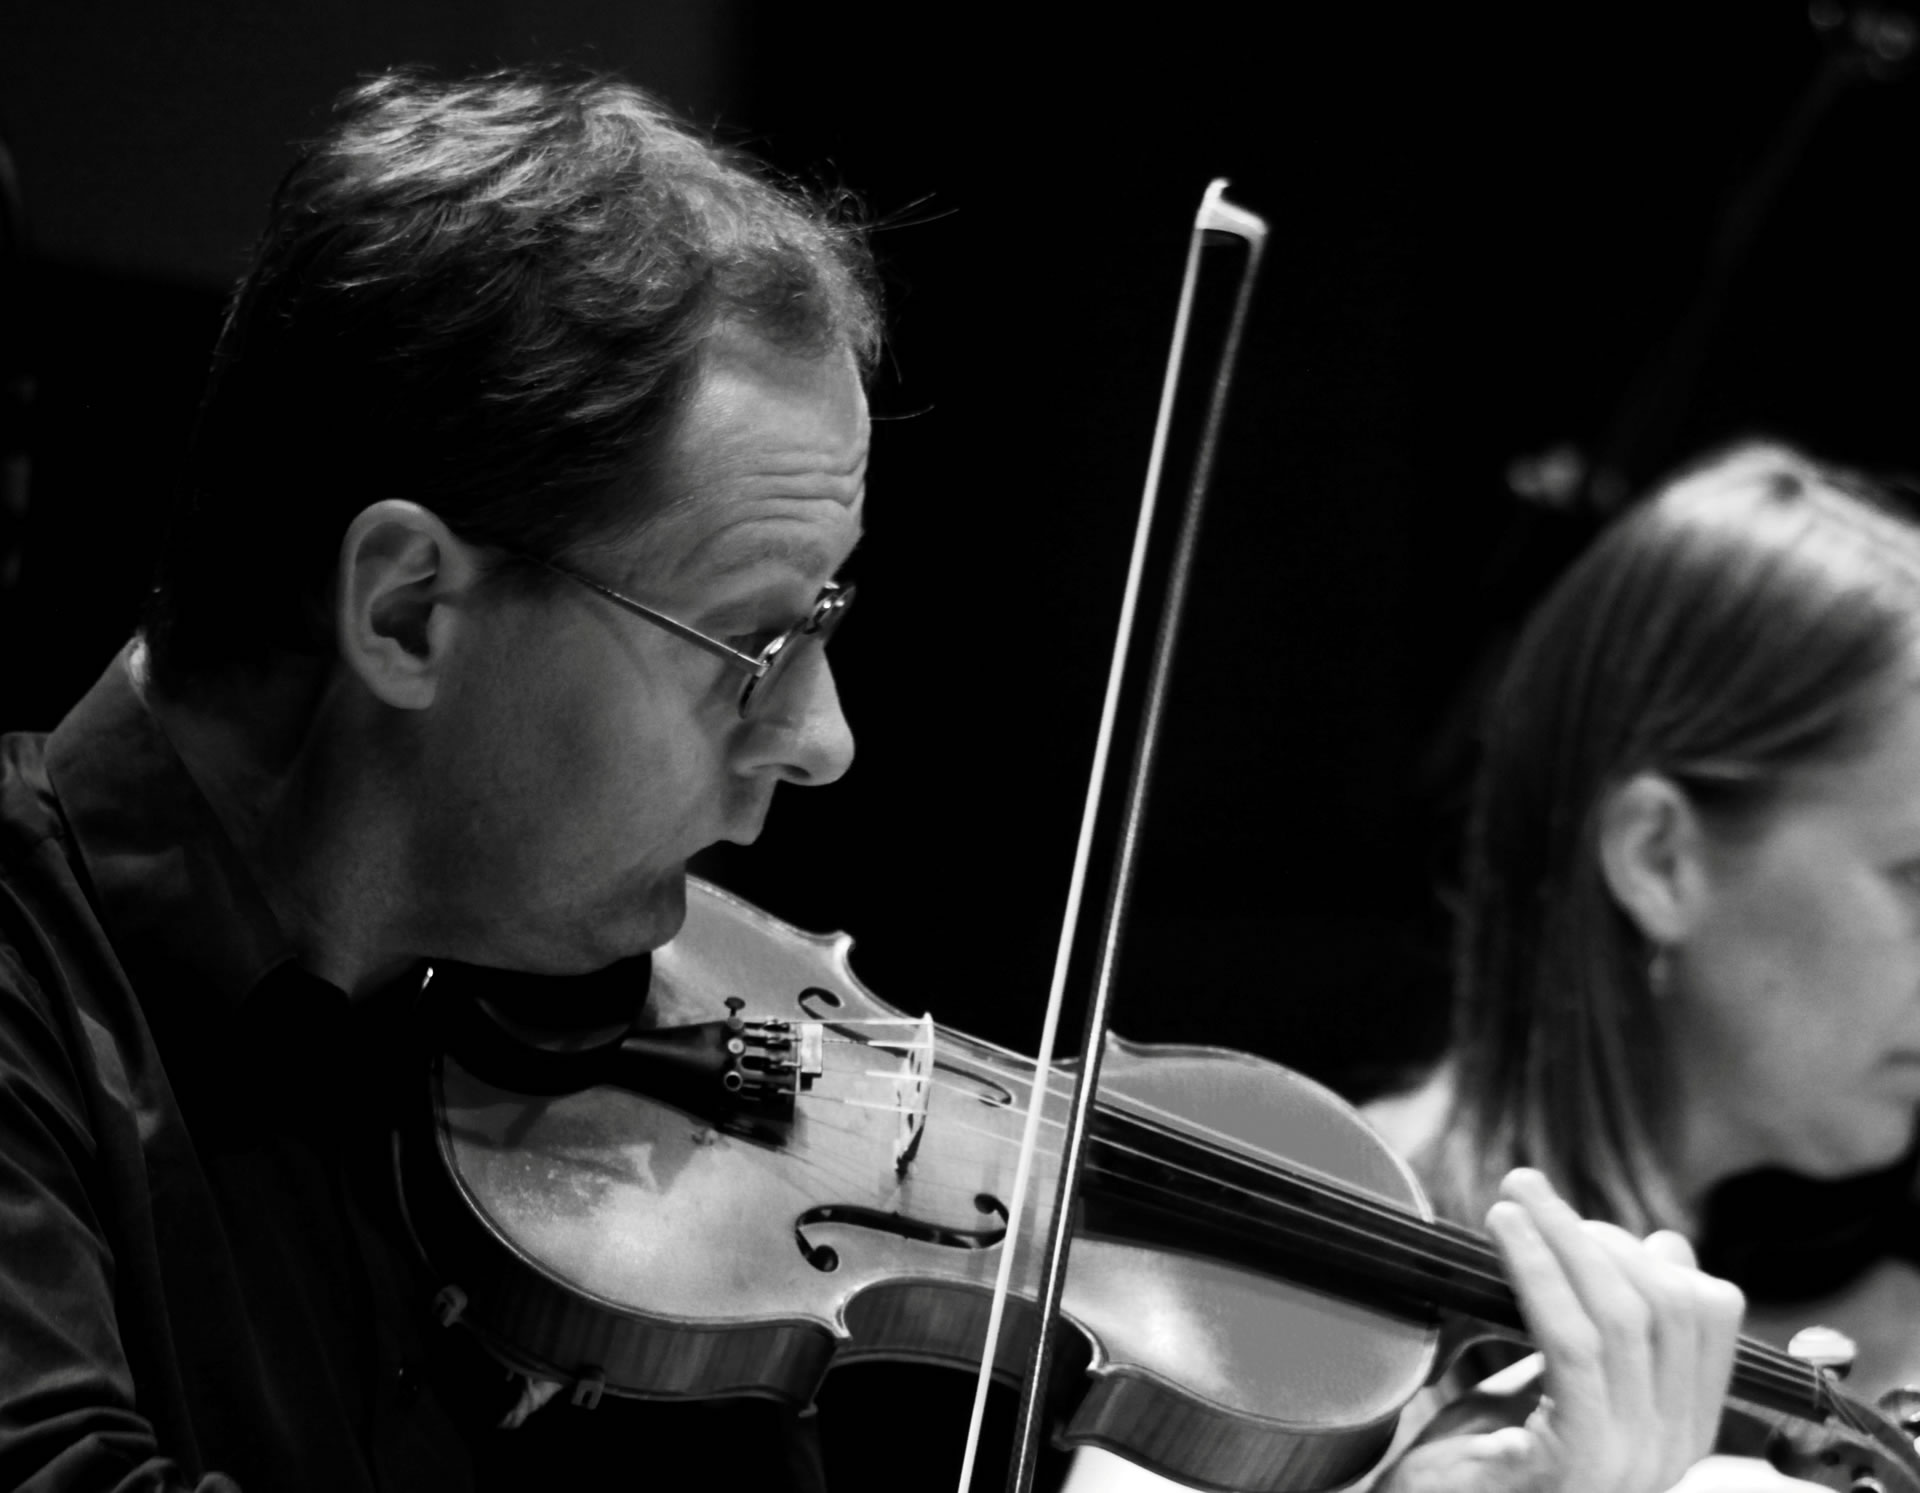 Violinists performing for a recording session